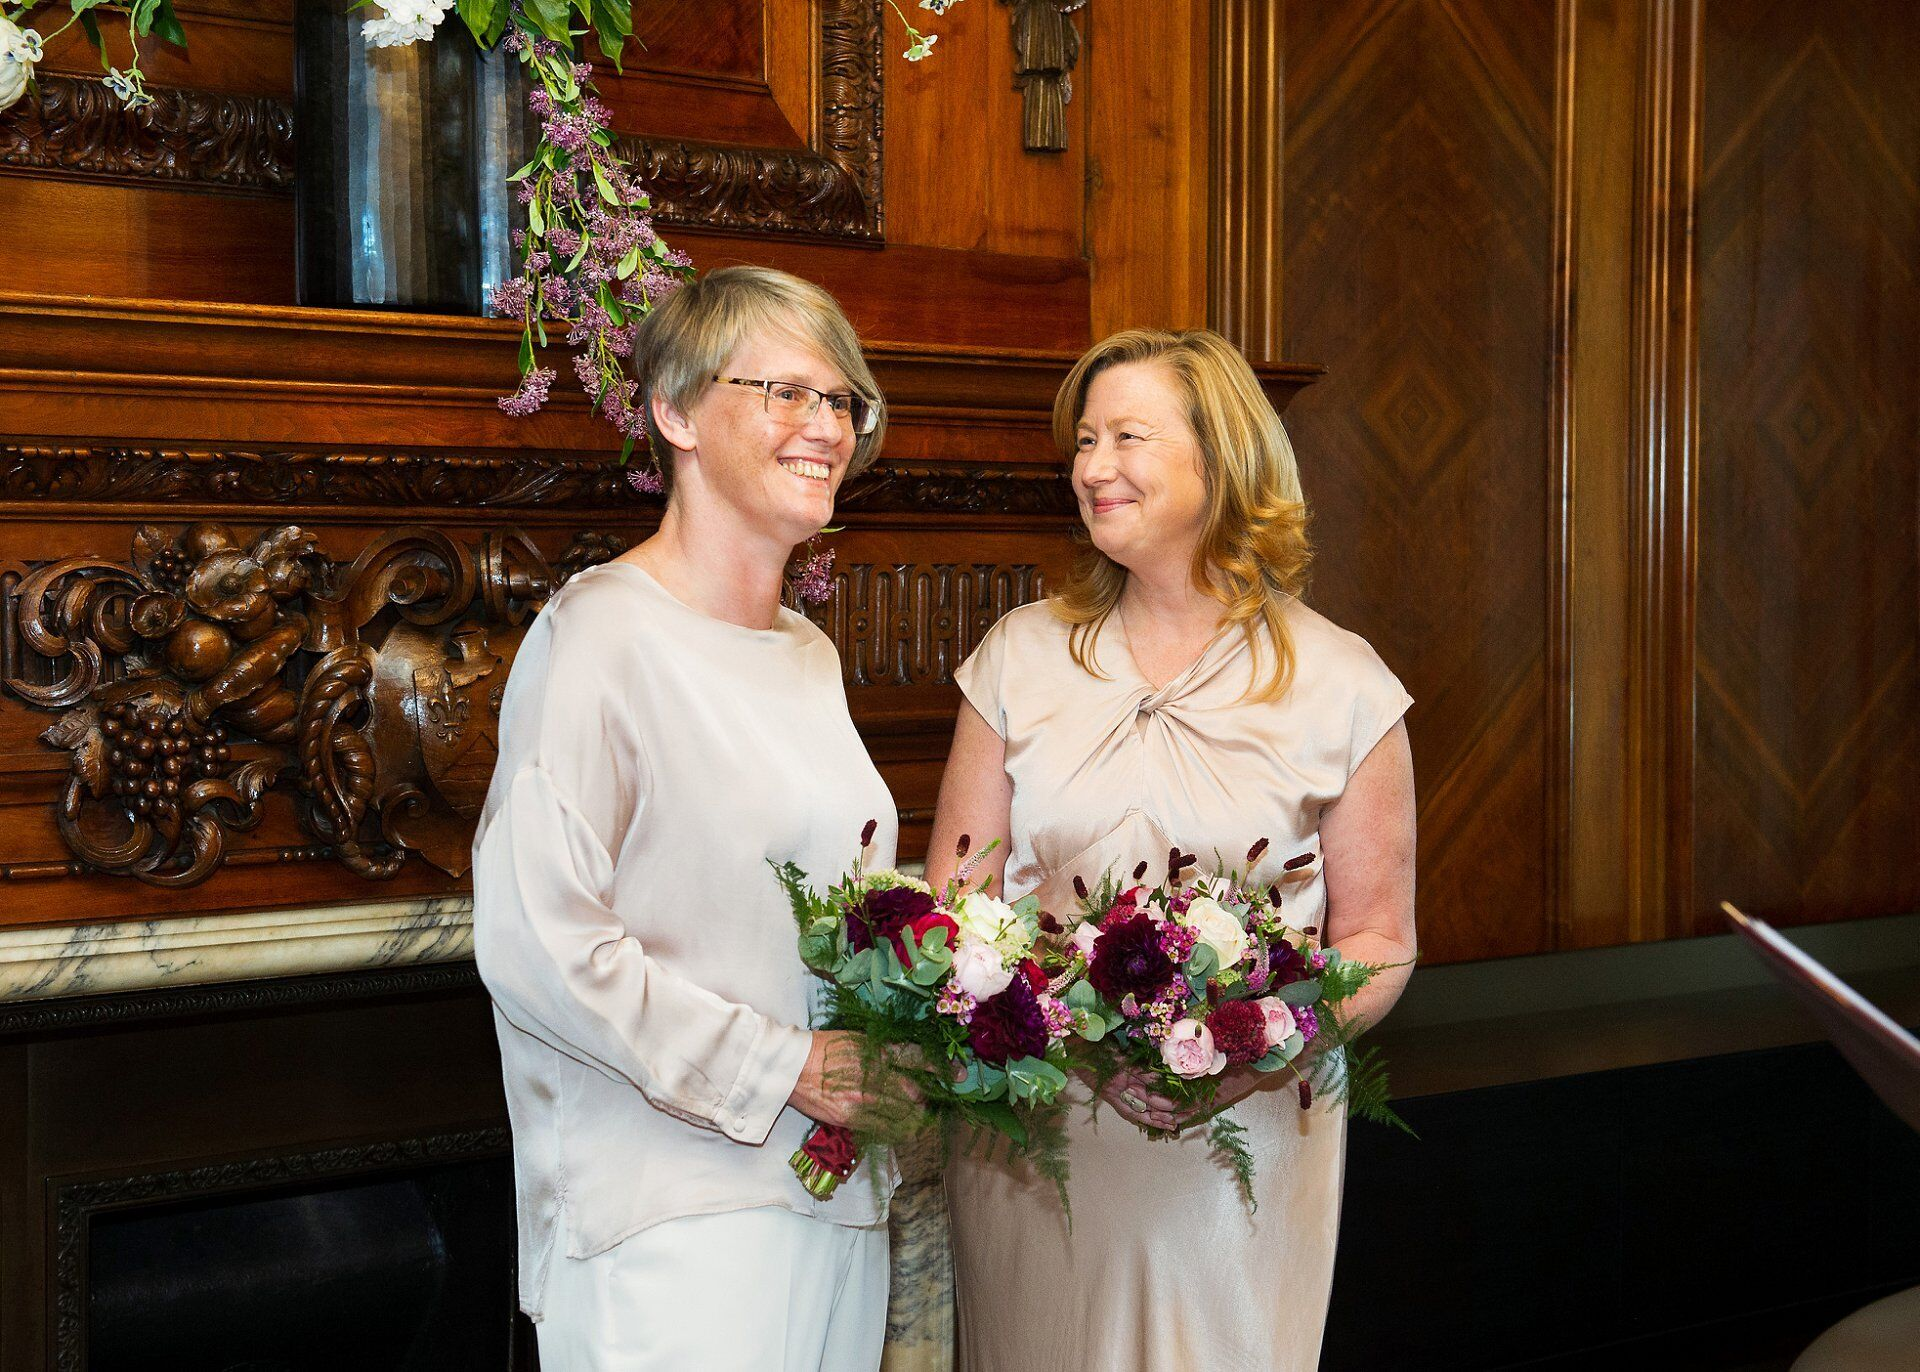 lgbt wedding in the paddington room at old marylebone town hall with two brides wearing gorgeous ghost outfits